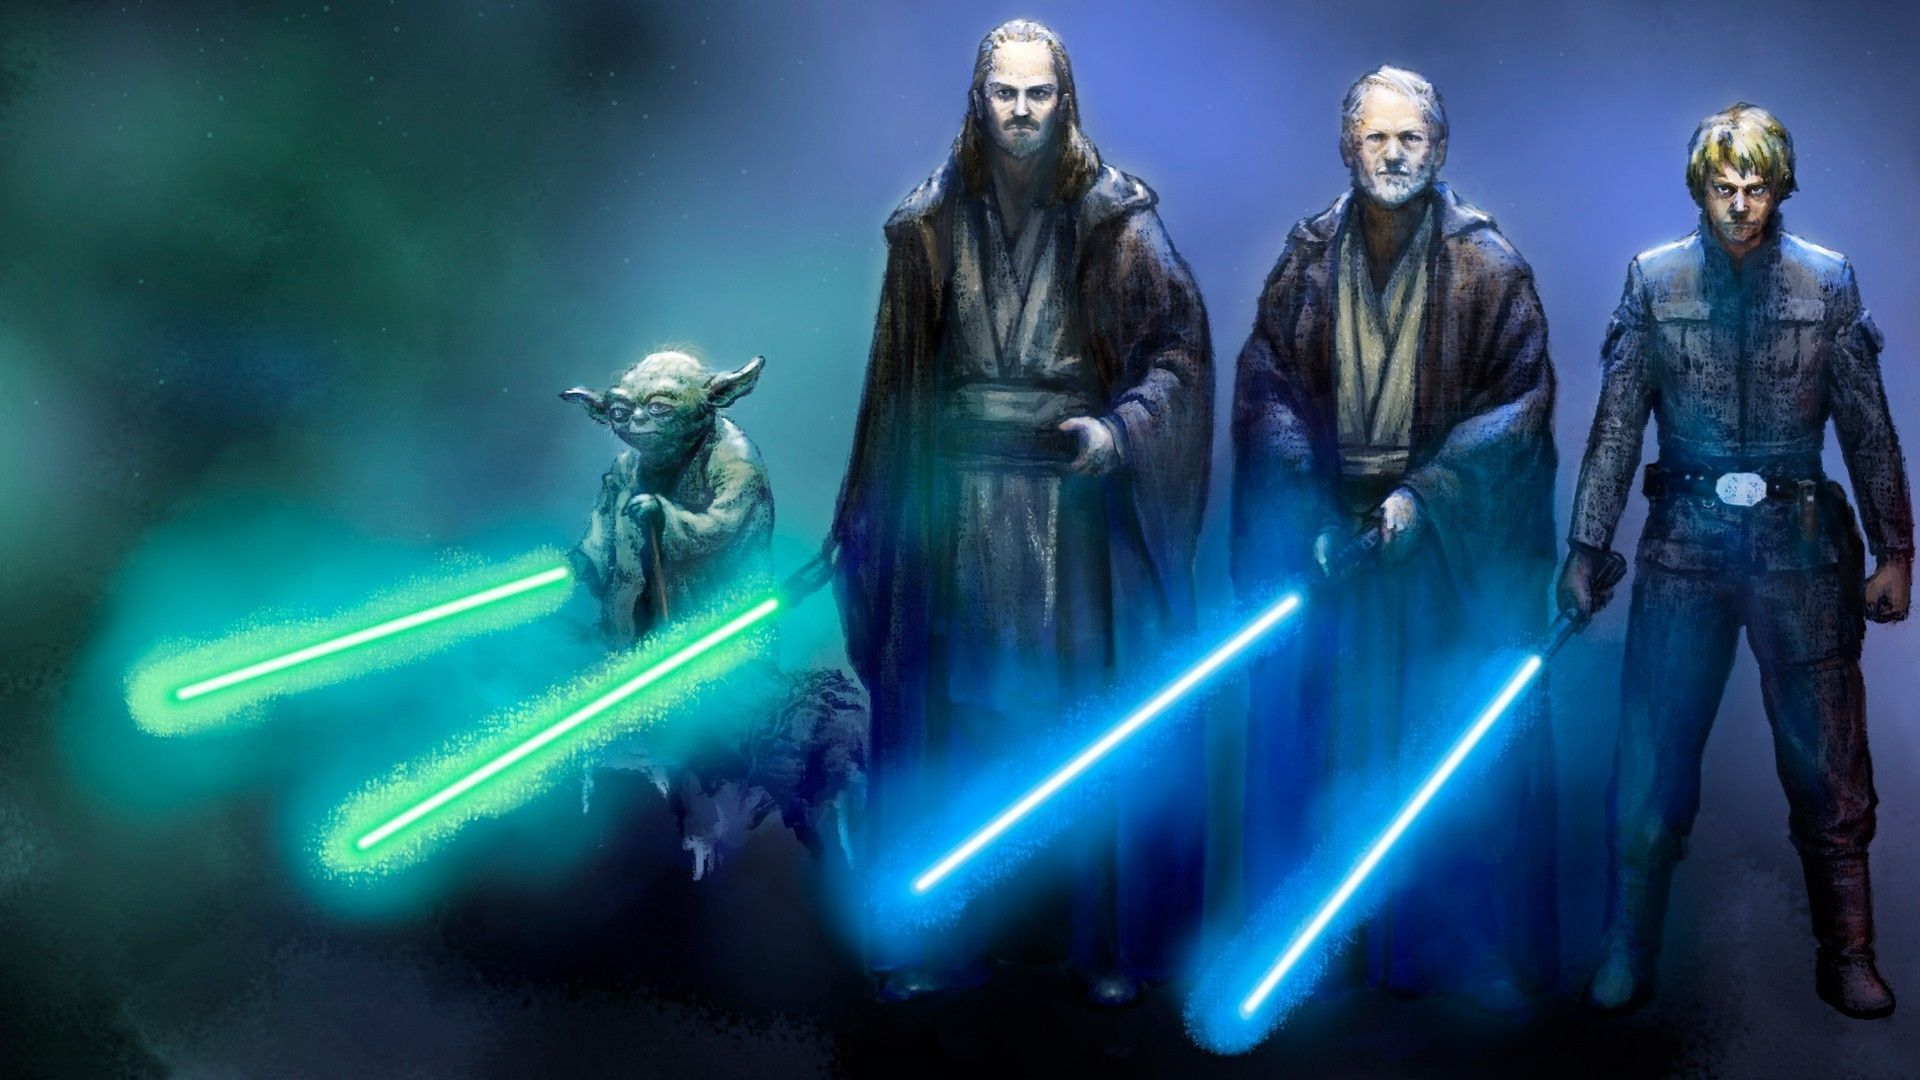 Luke Obi Wan Qui Gon Yoda , HD Wallpaper & Backgrounds